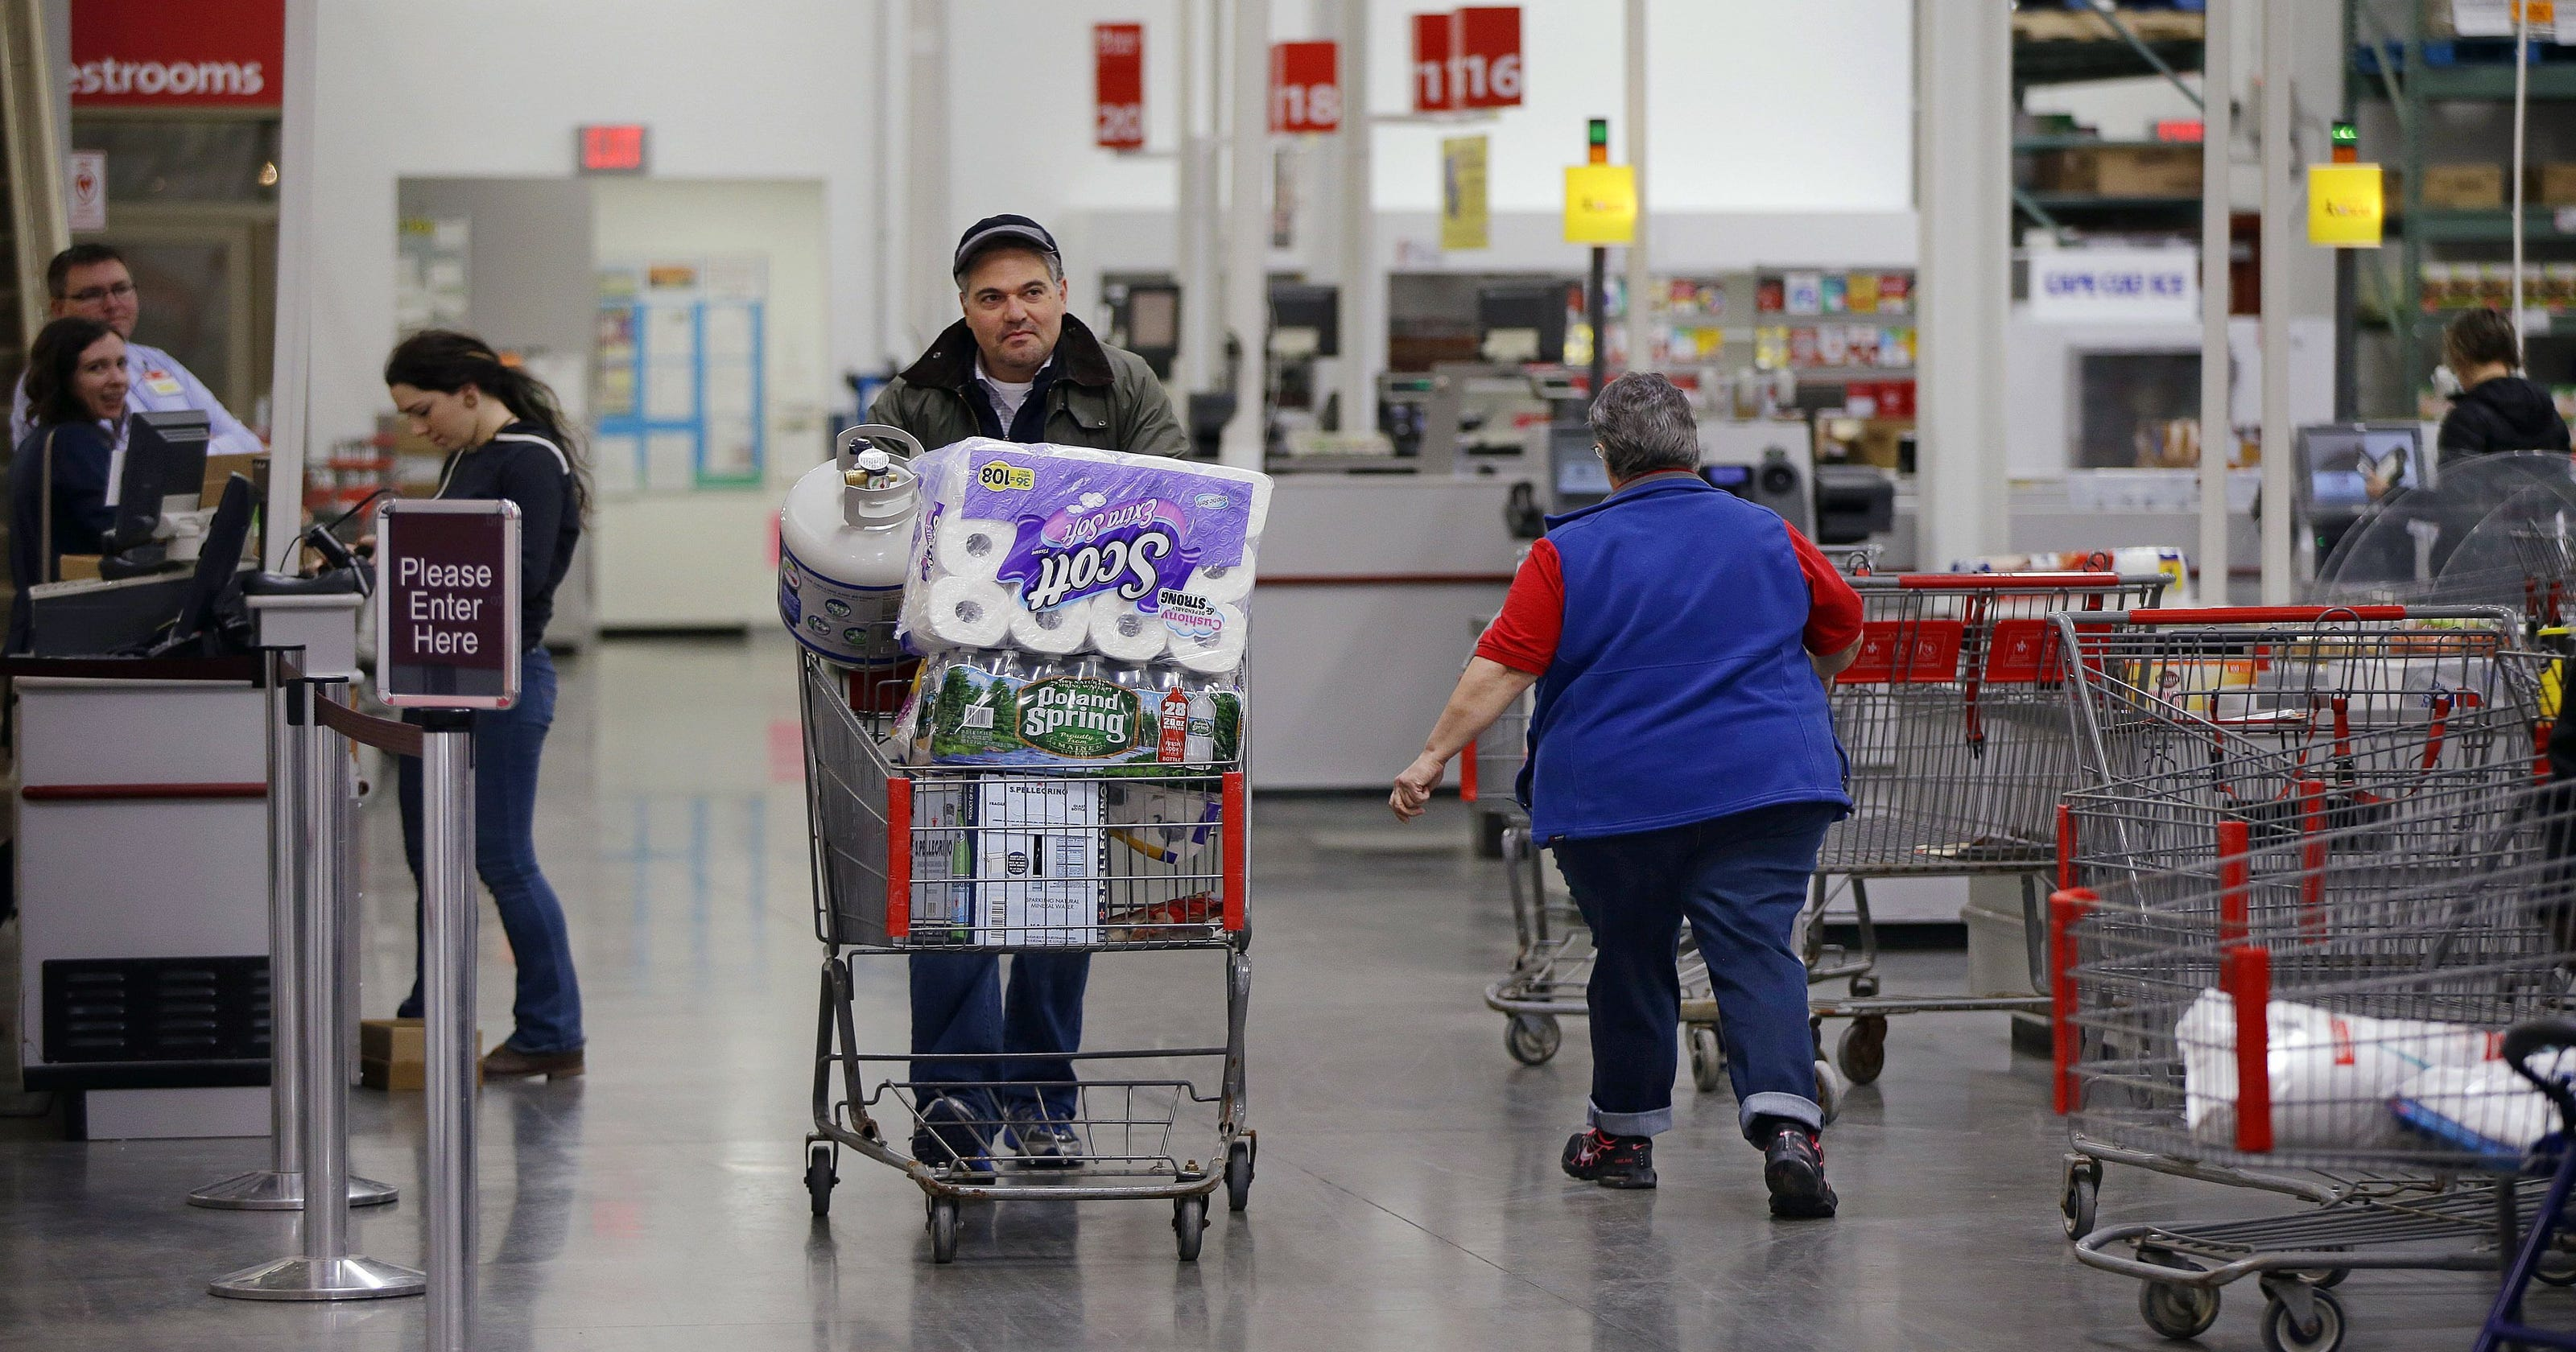 Stores make push in scan-and-go tech, hope shoppers adopt it